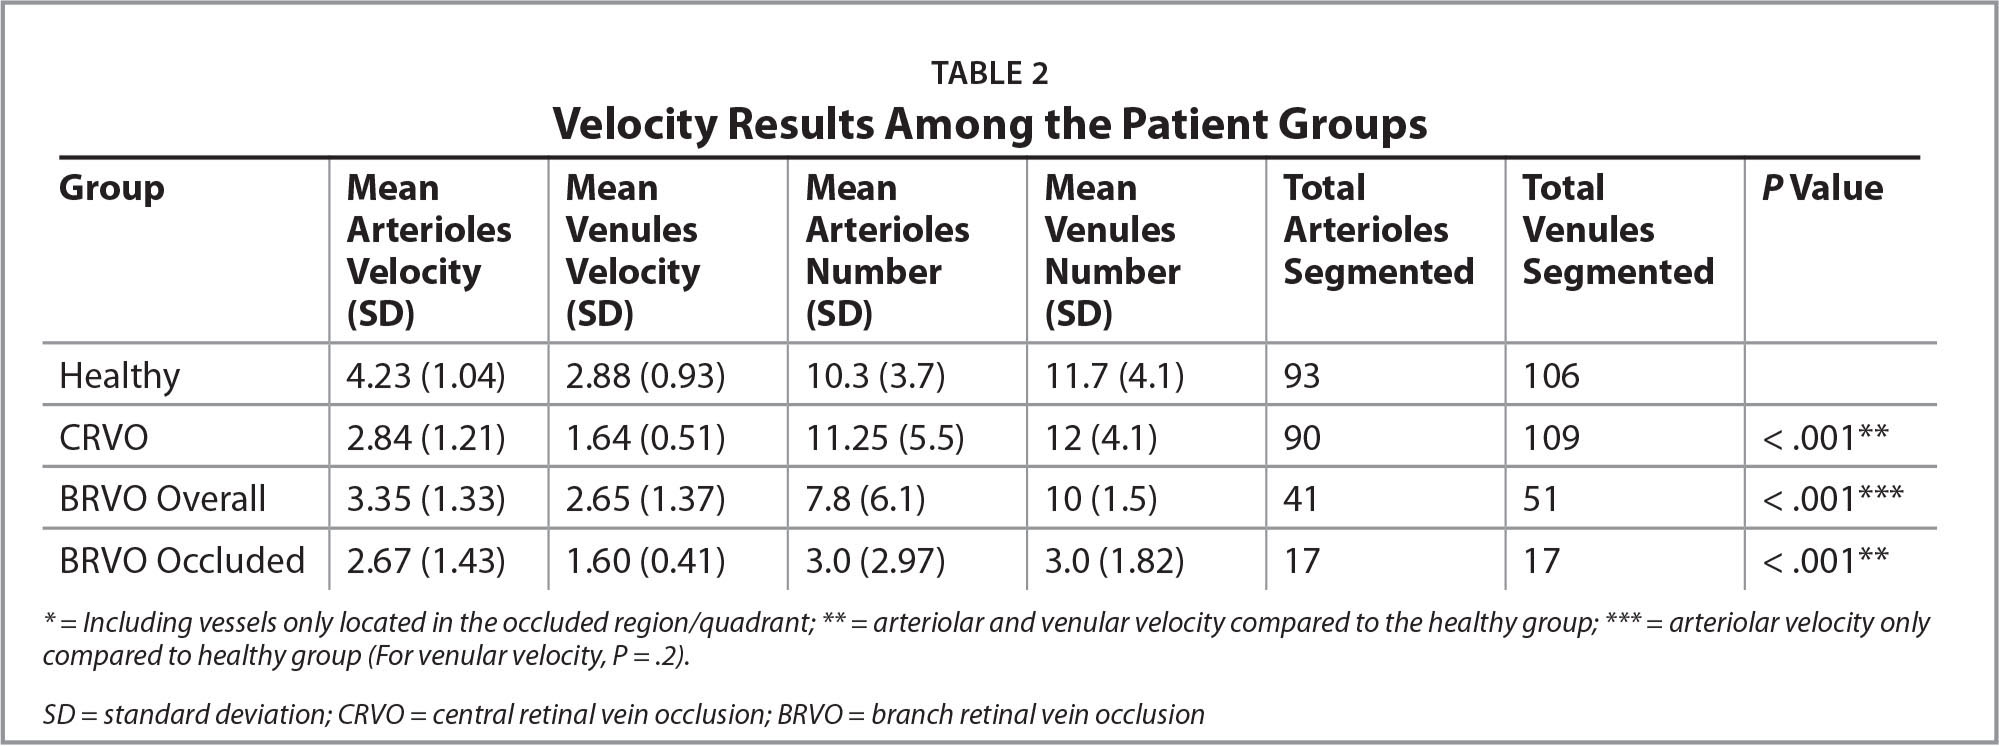 Velocity Results Among the Patient Groups